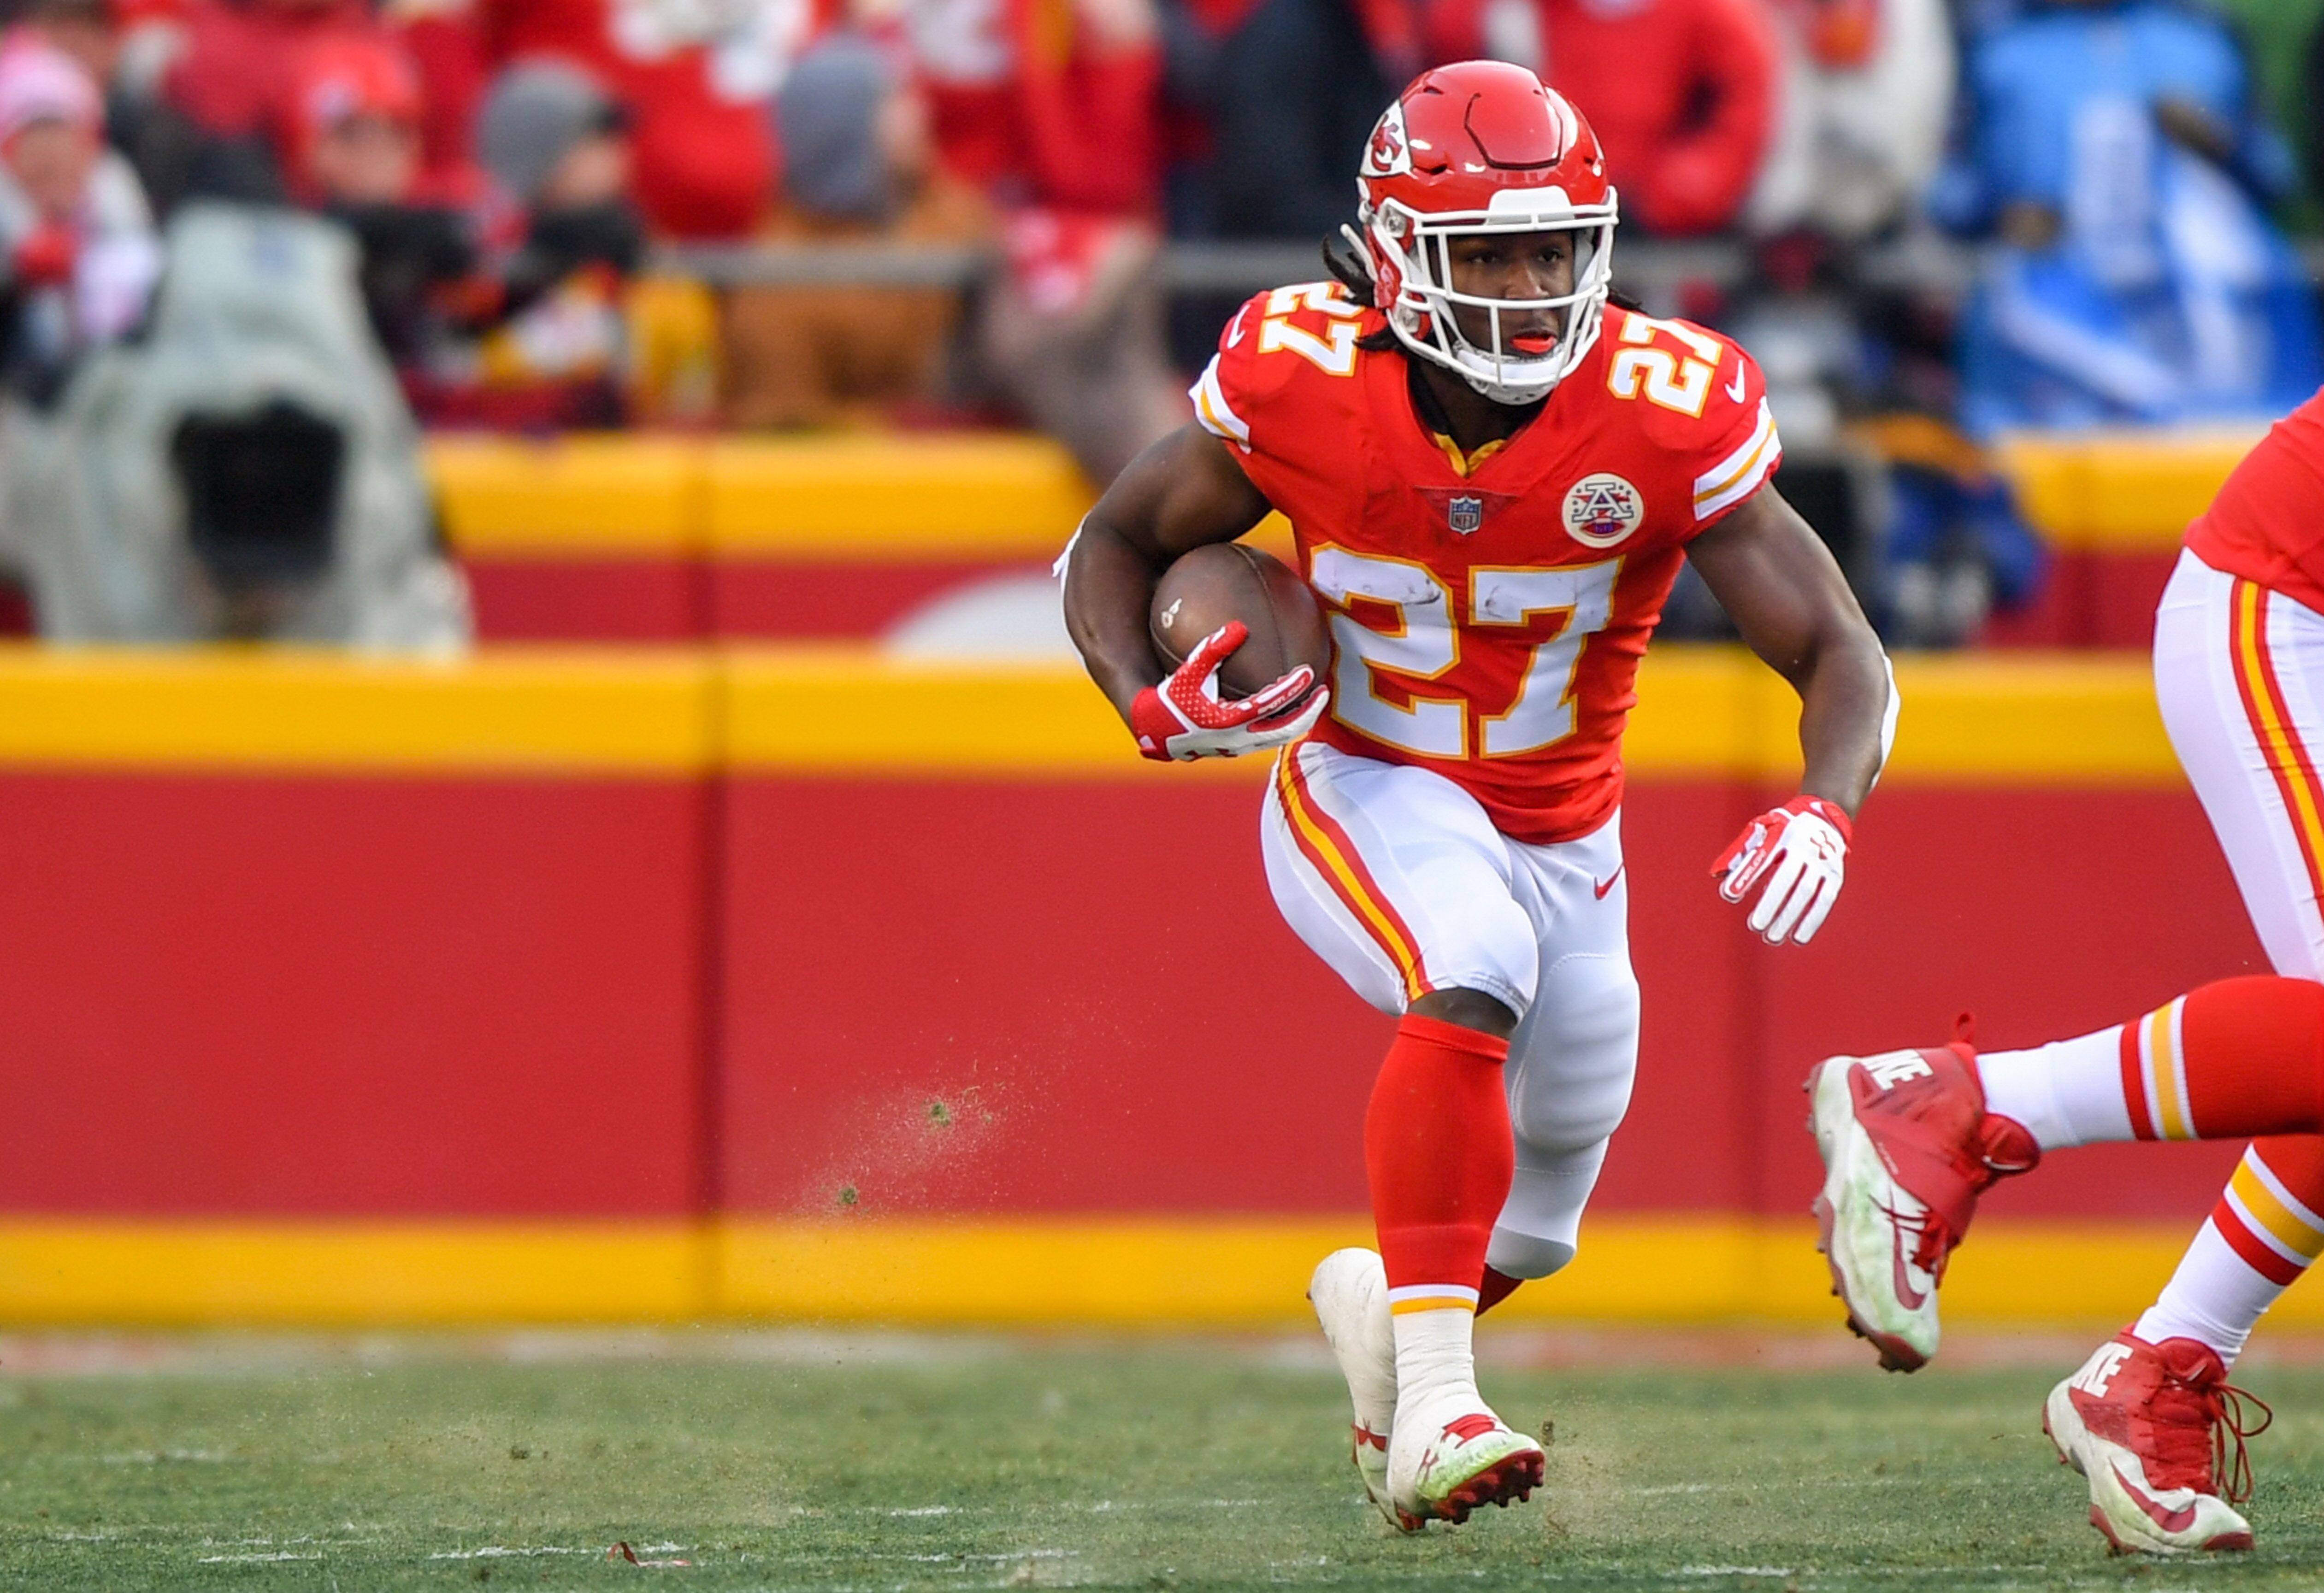 ebcf39d47 Breaking down Kareem Hunt s latest altercation and legal situation